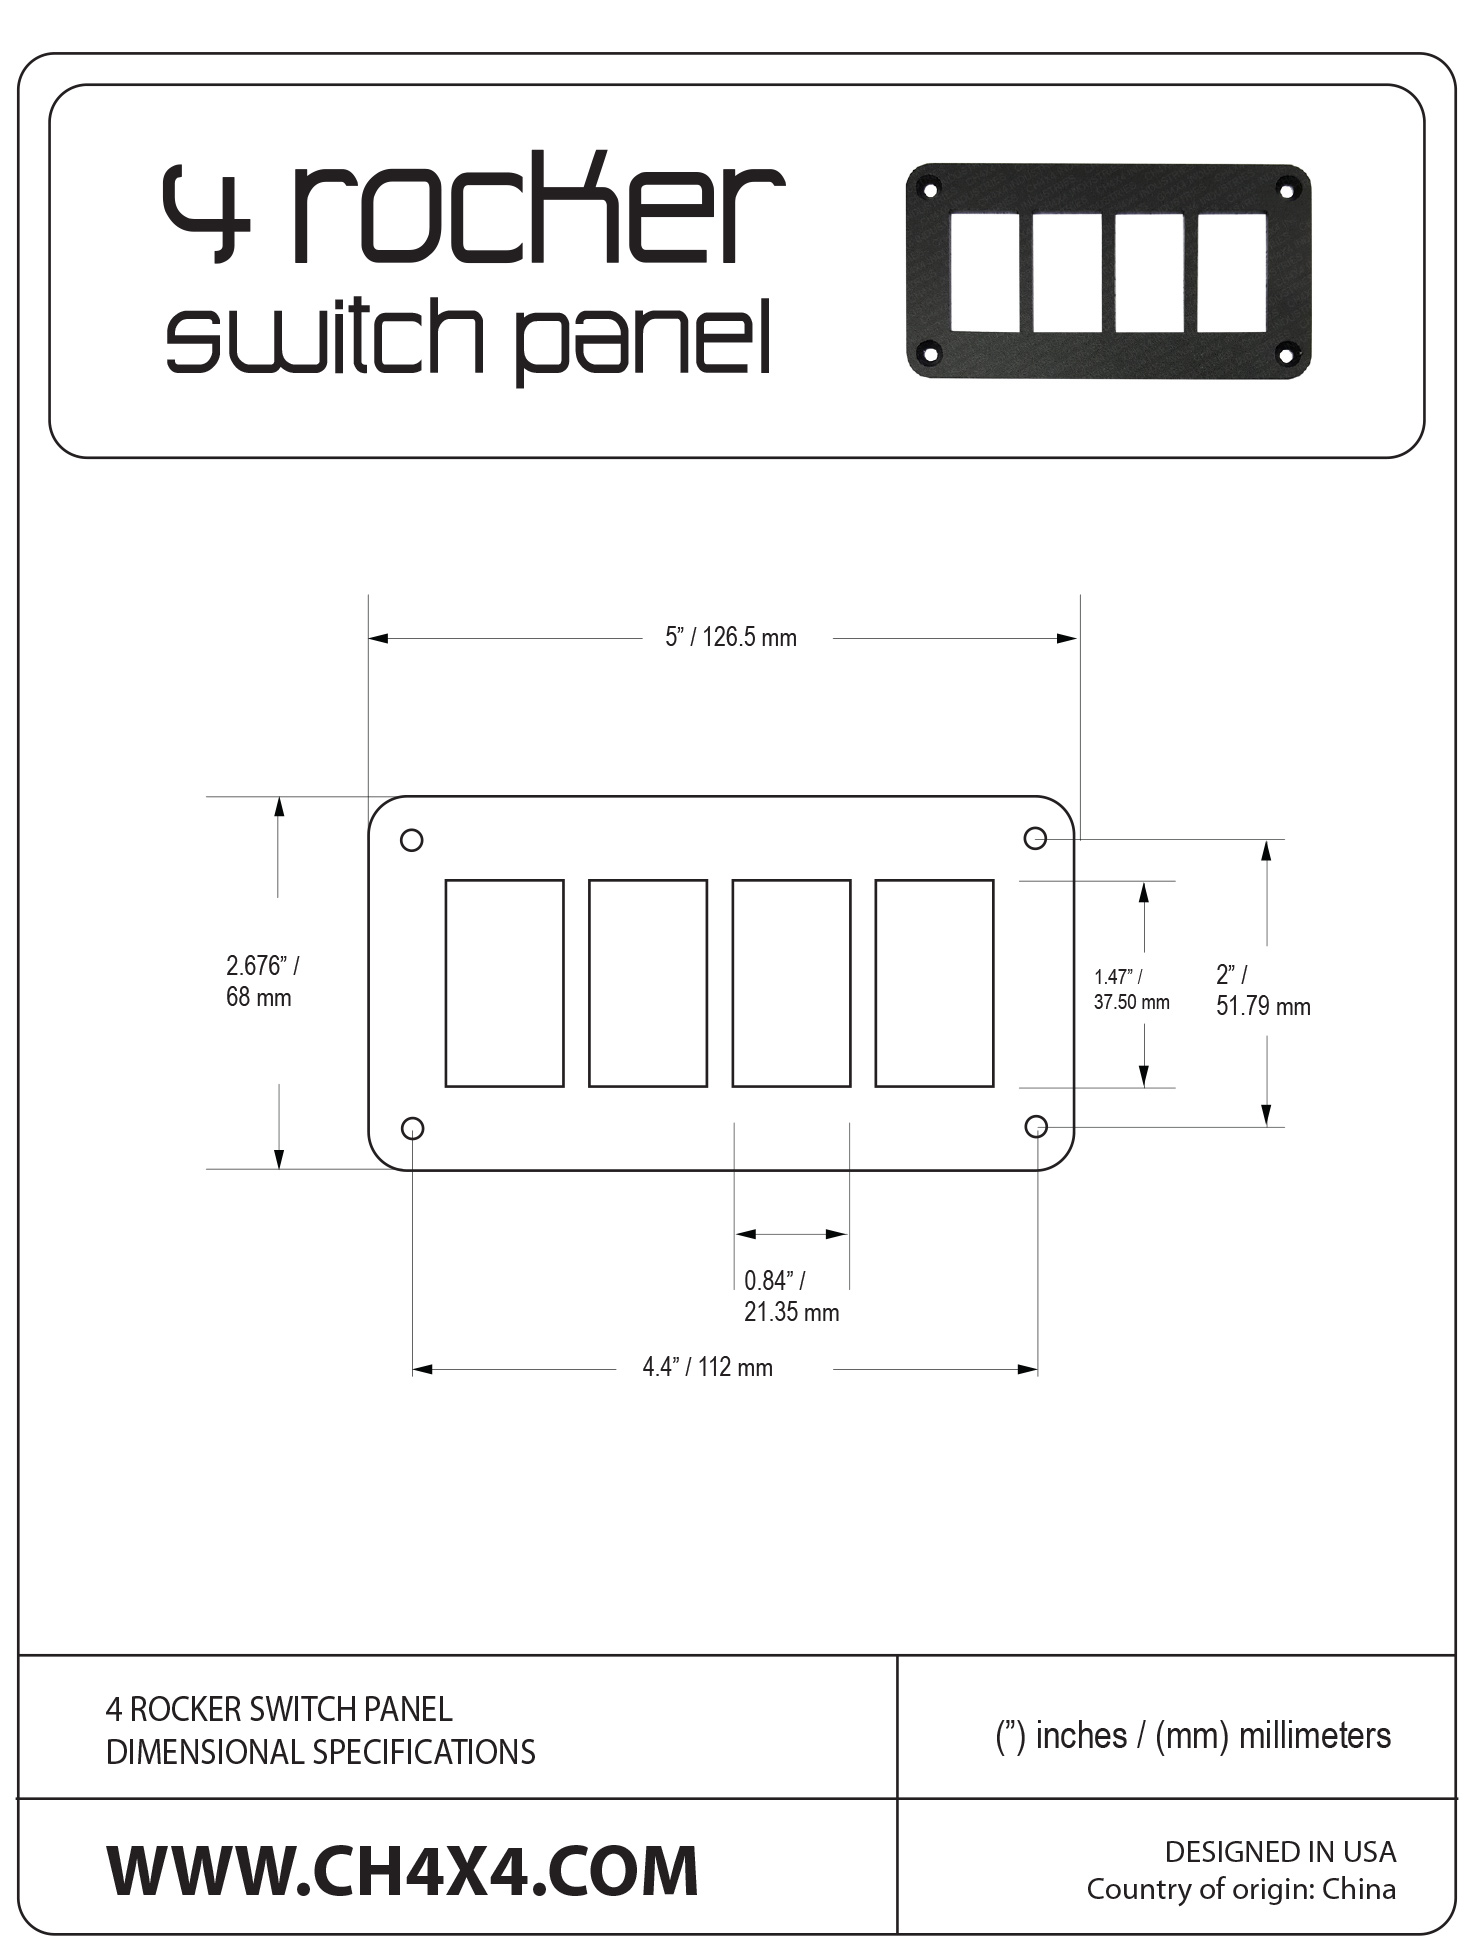 4-Rocket-Switch-Panel-Dimensional-Specifications